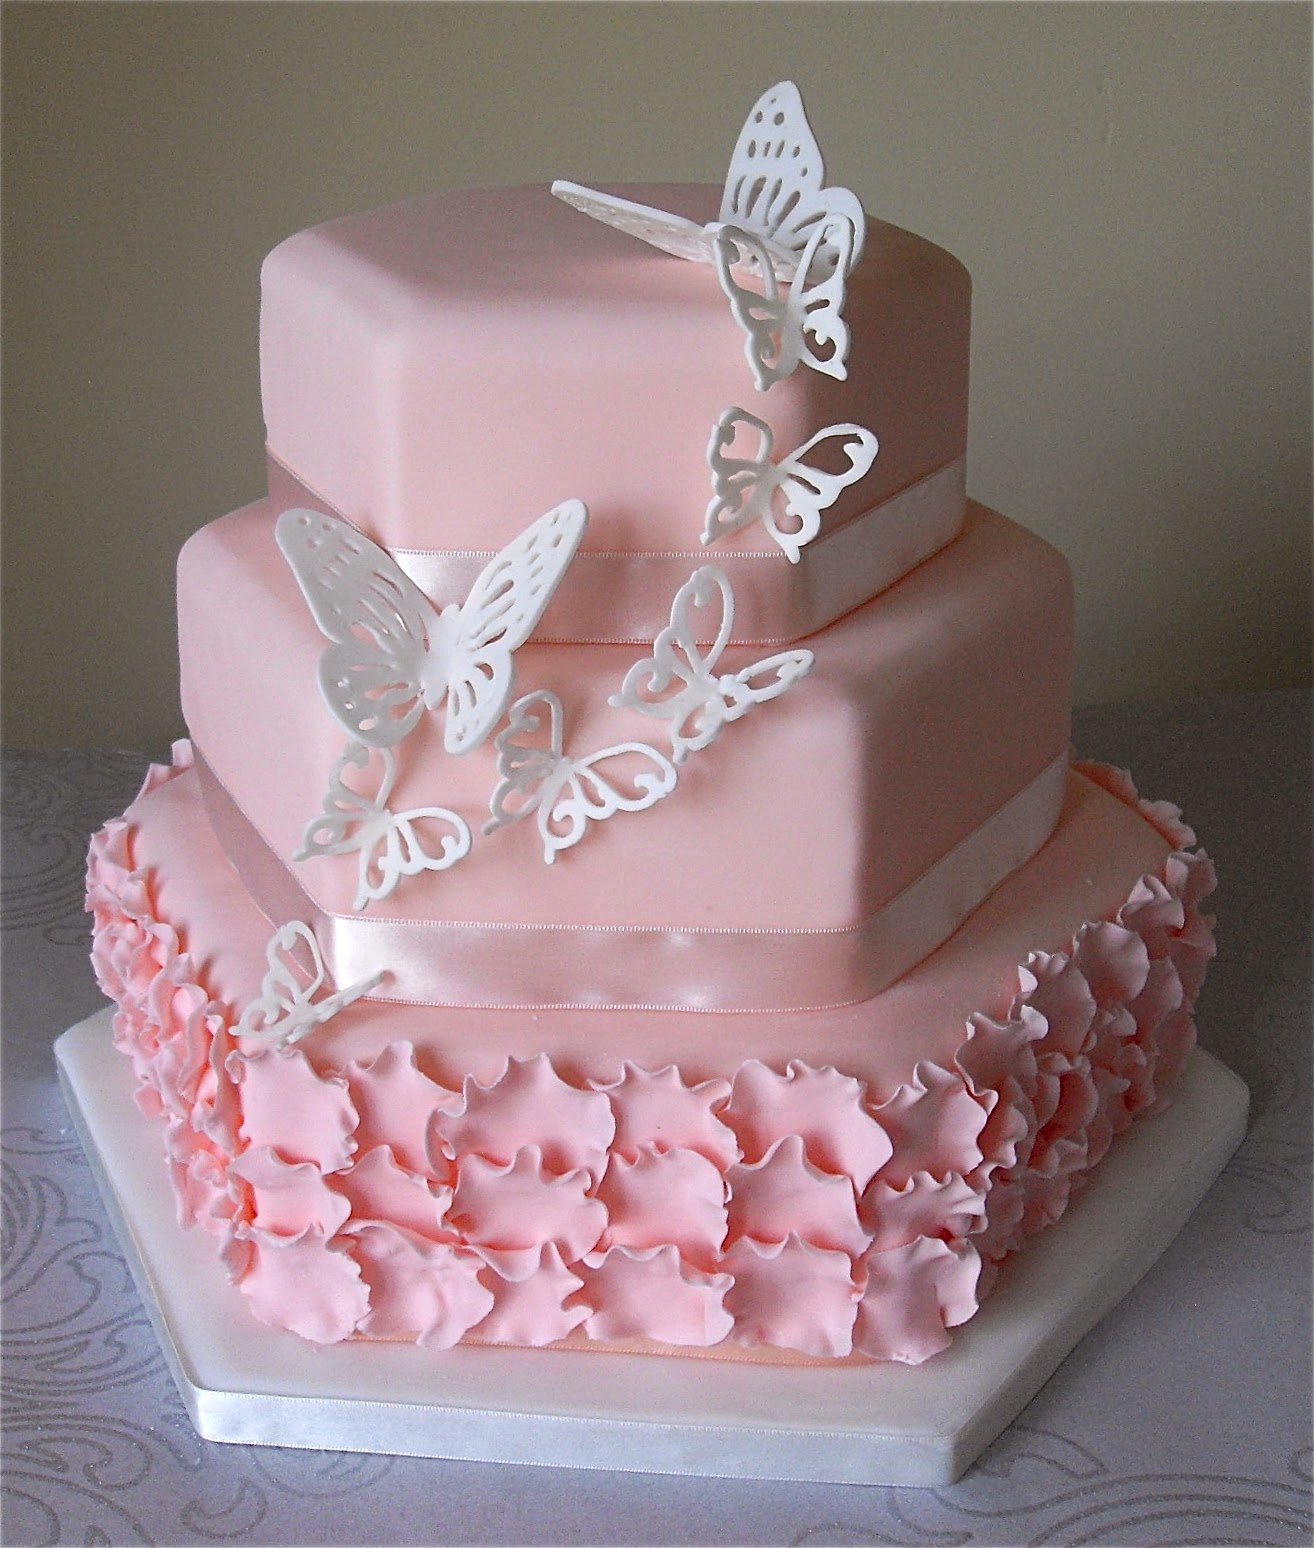 Expensive wedding cakes for the ceremony: Butterfly wedding cakes ...